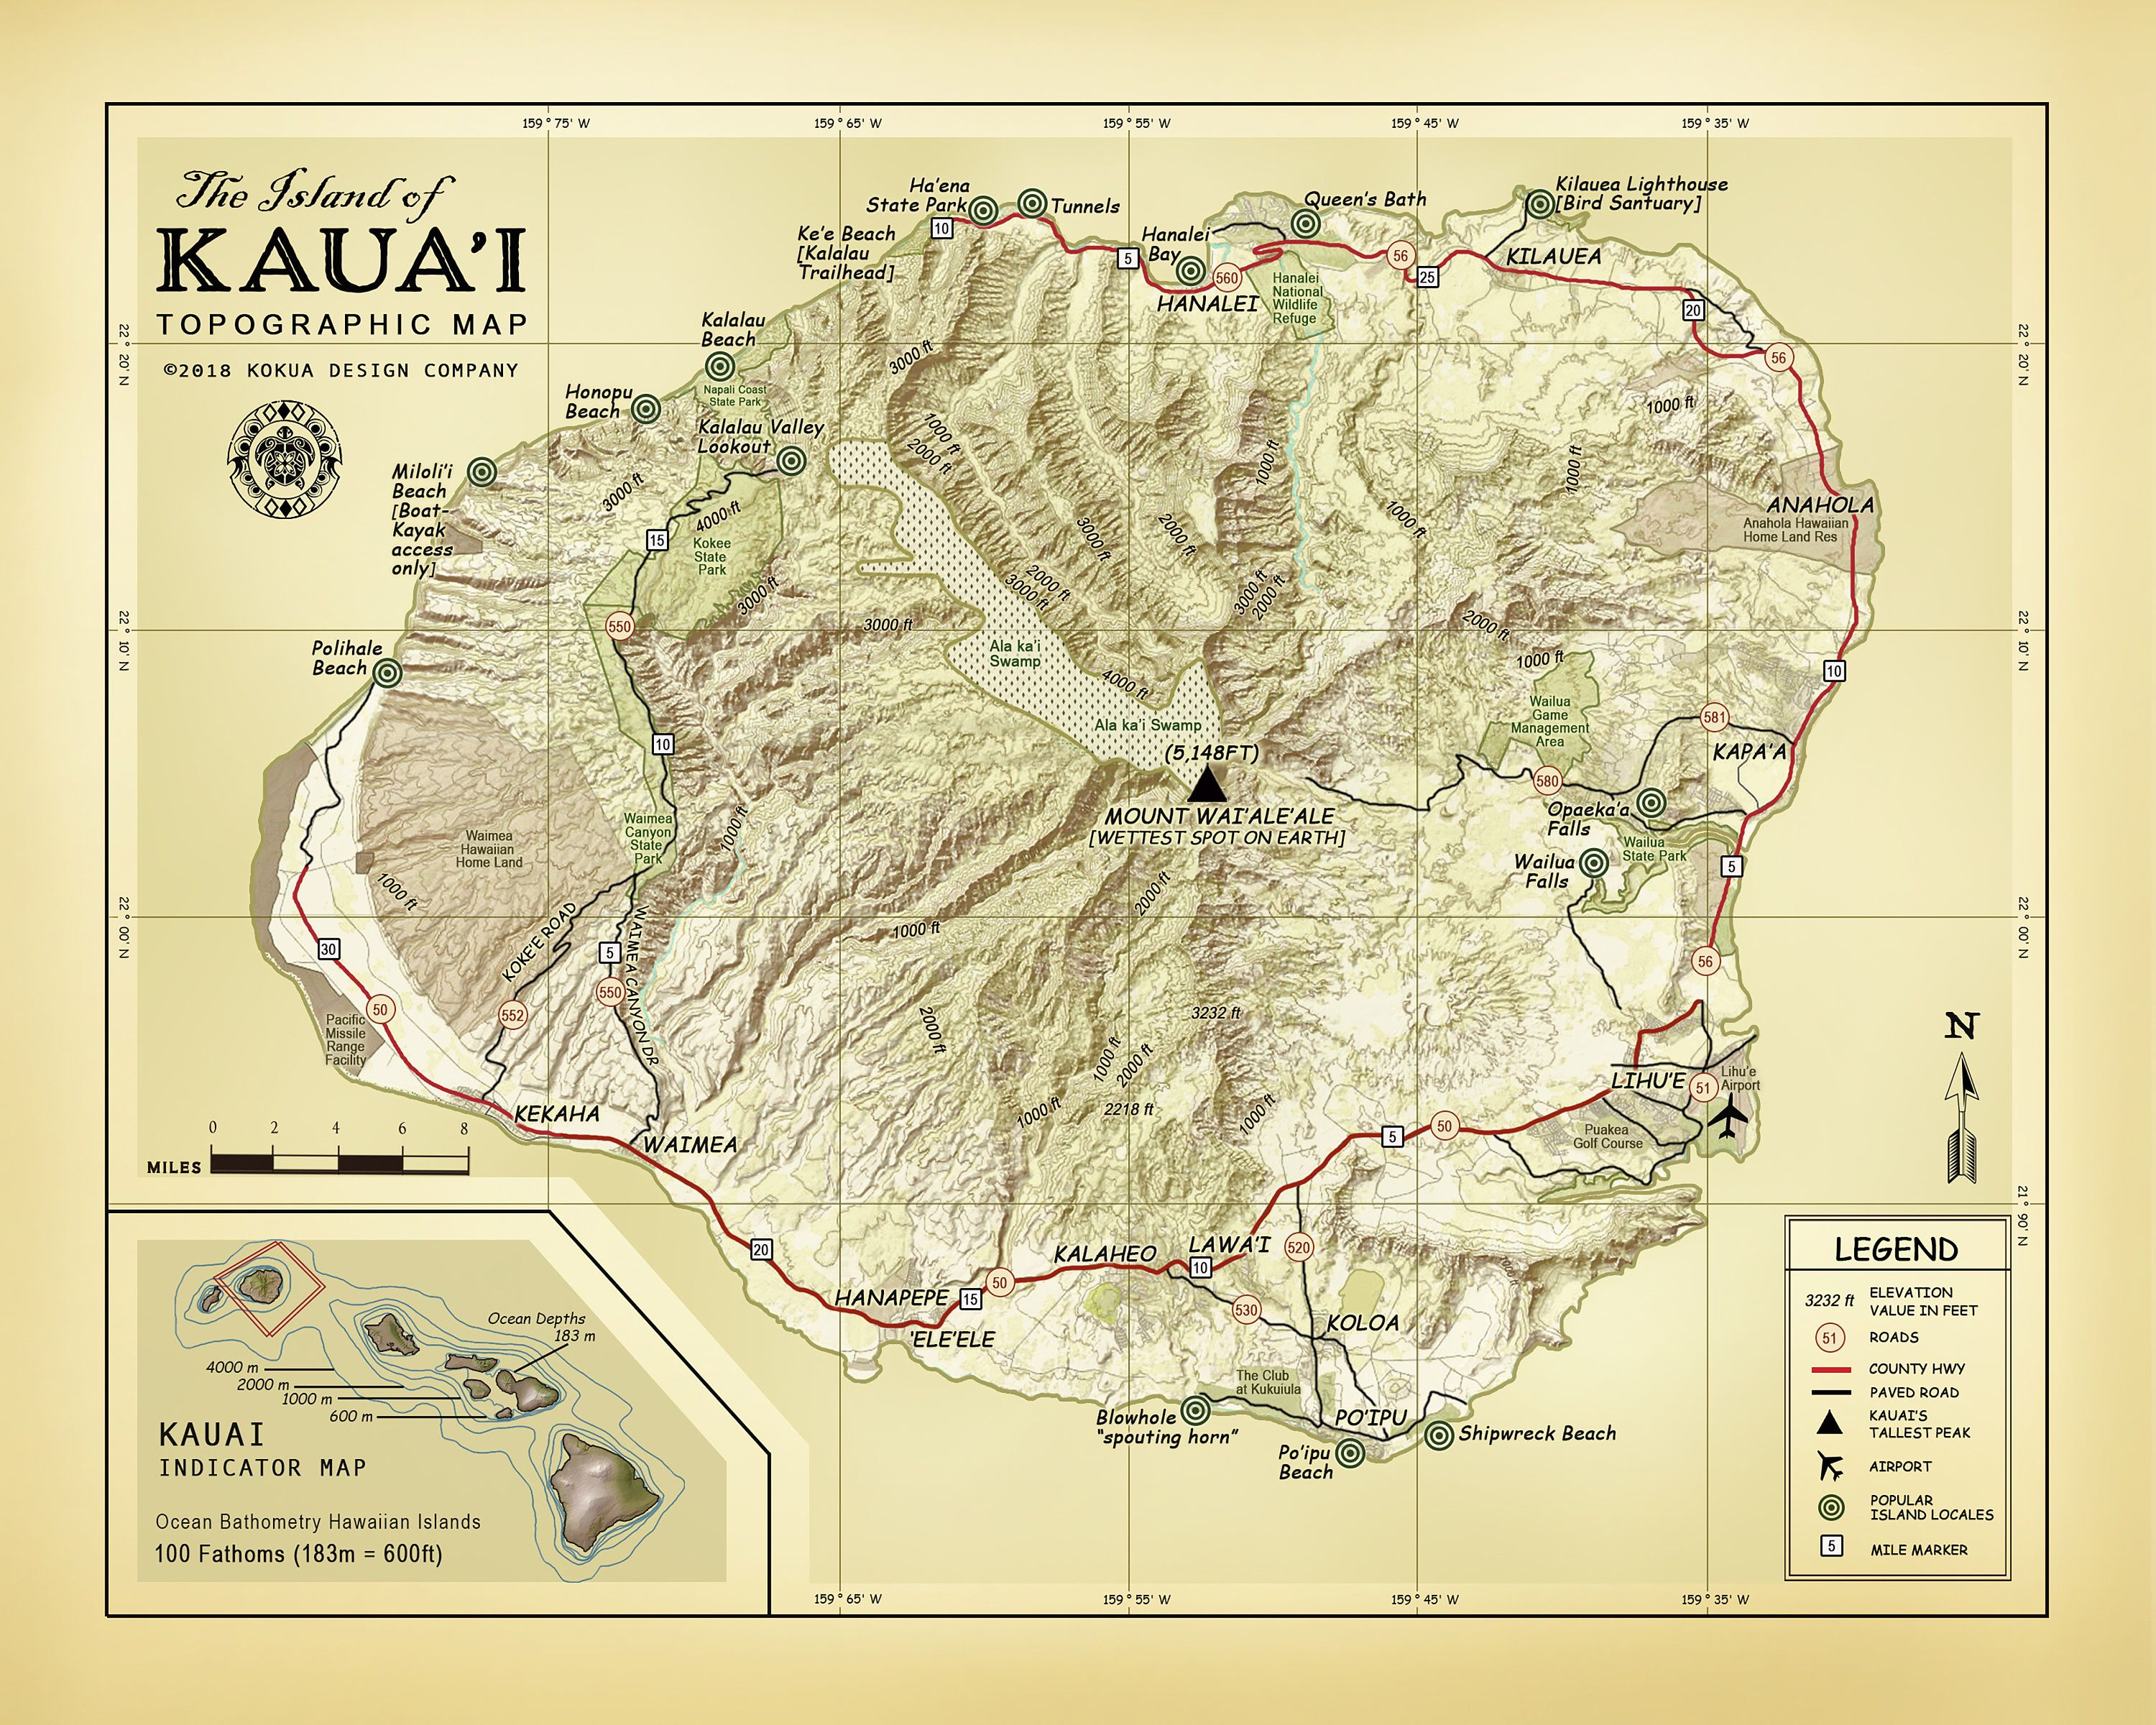 Topographic Map Of Maui.The Island Of Kauai 11 X 14 Vintage Inspired Topographic Map